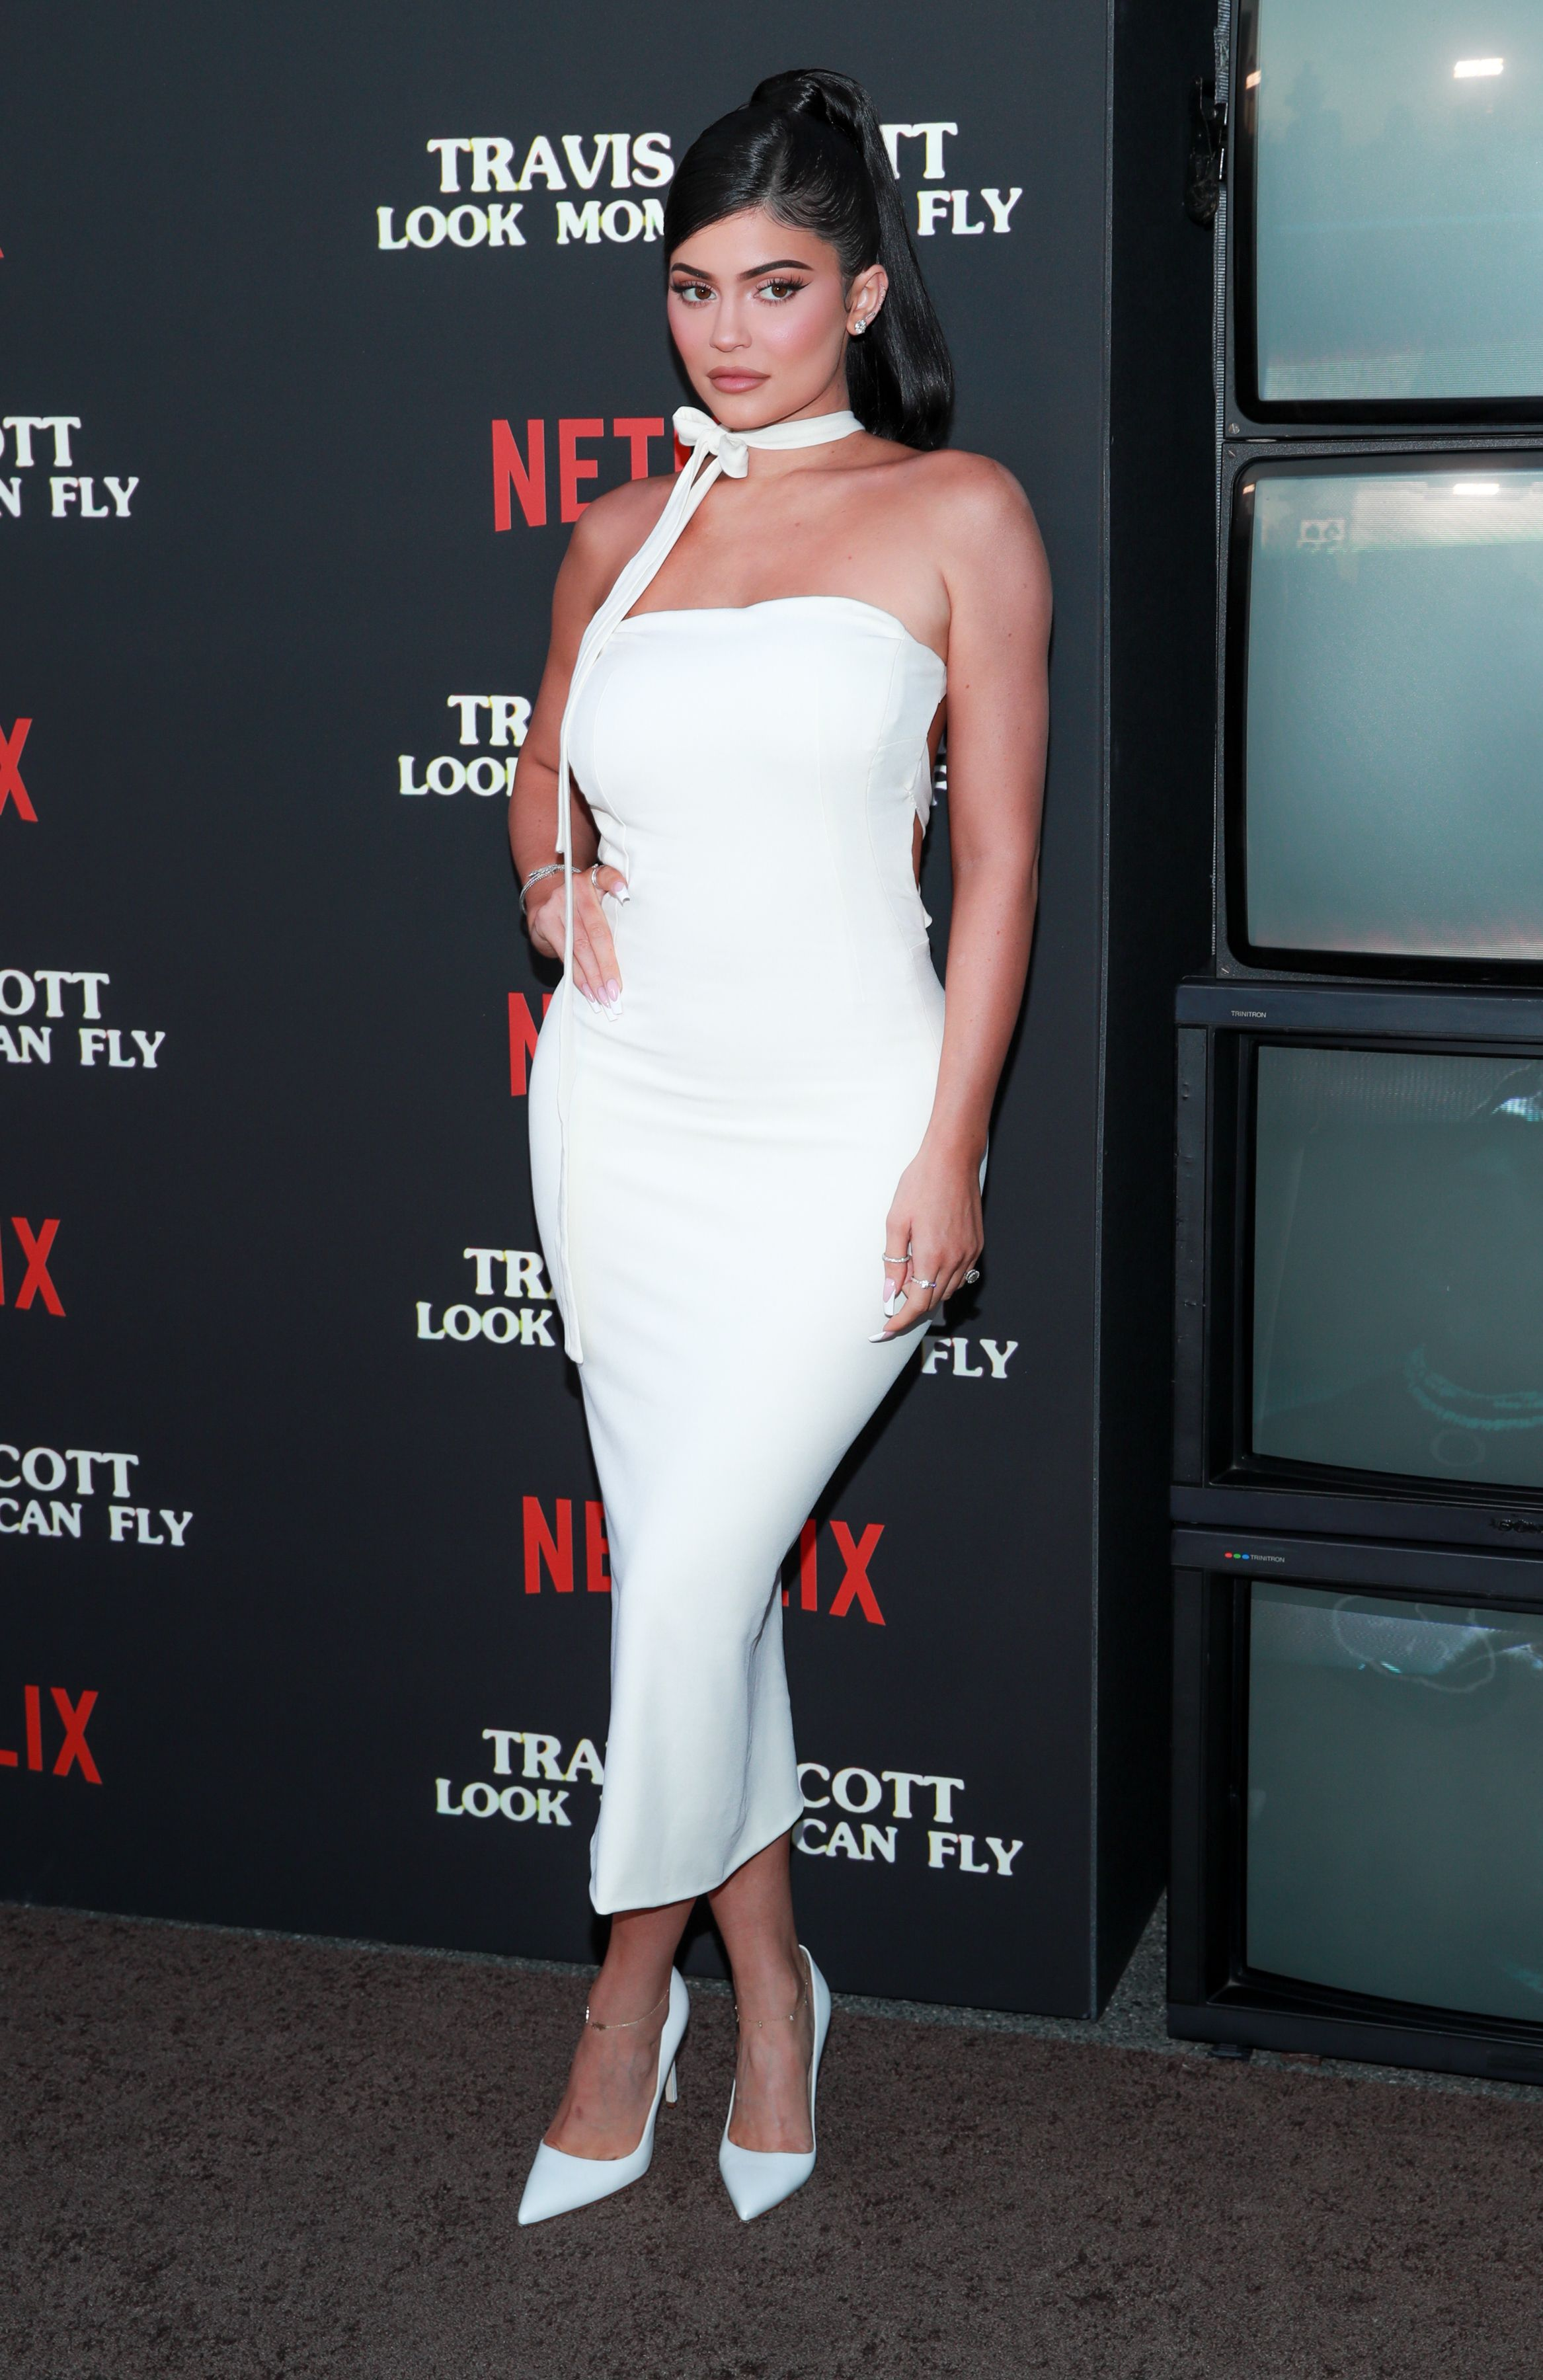 """Kylie Jenner attends the premiere of Netflix's """"Travis Scott: Look Mom I Can Fly"""" at Barker Hangar on August 27, 2019 